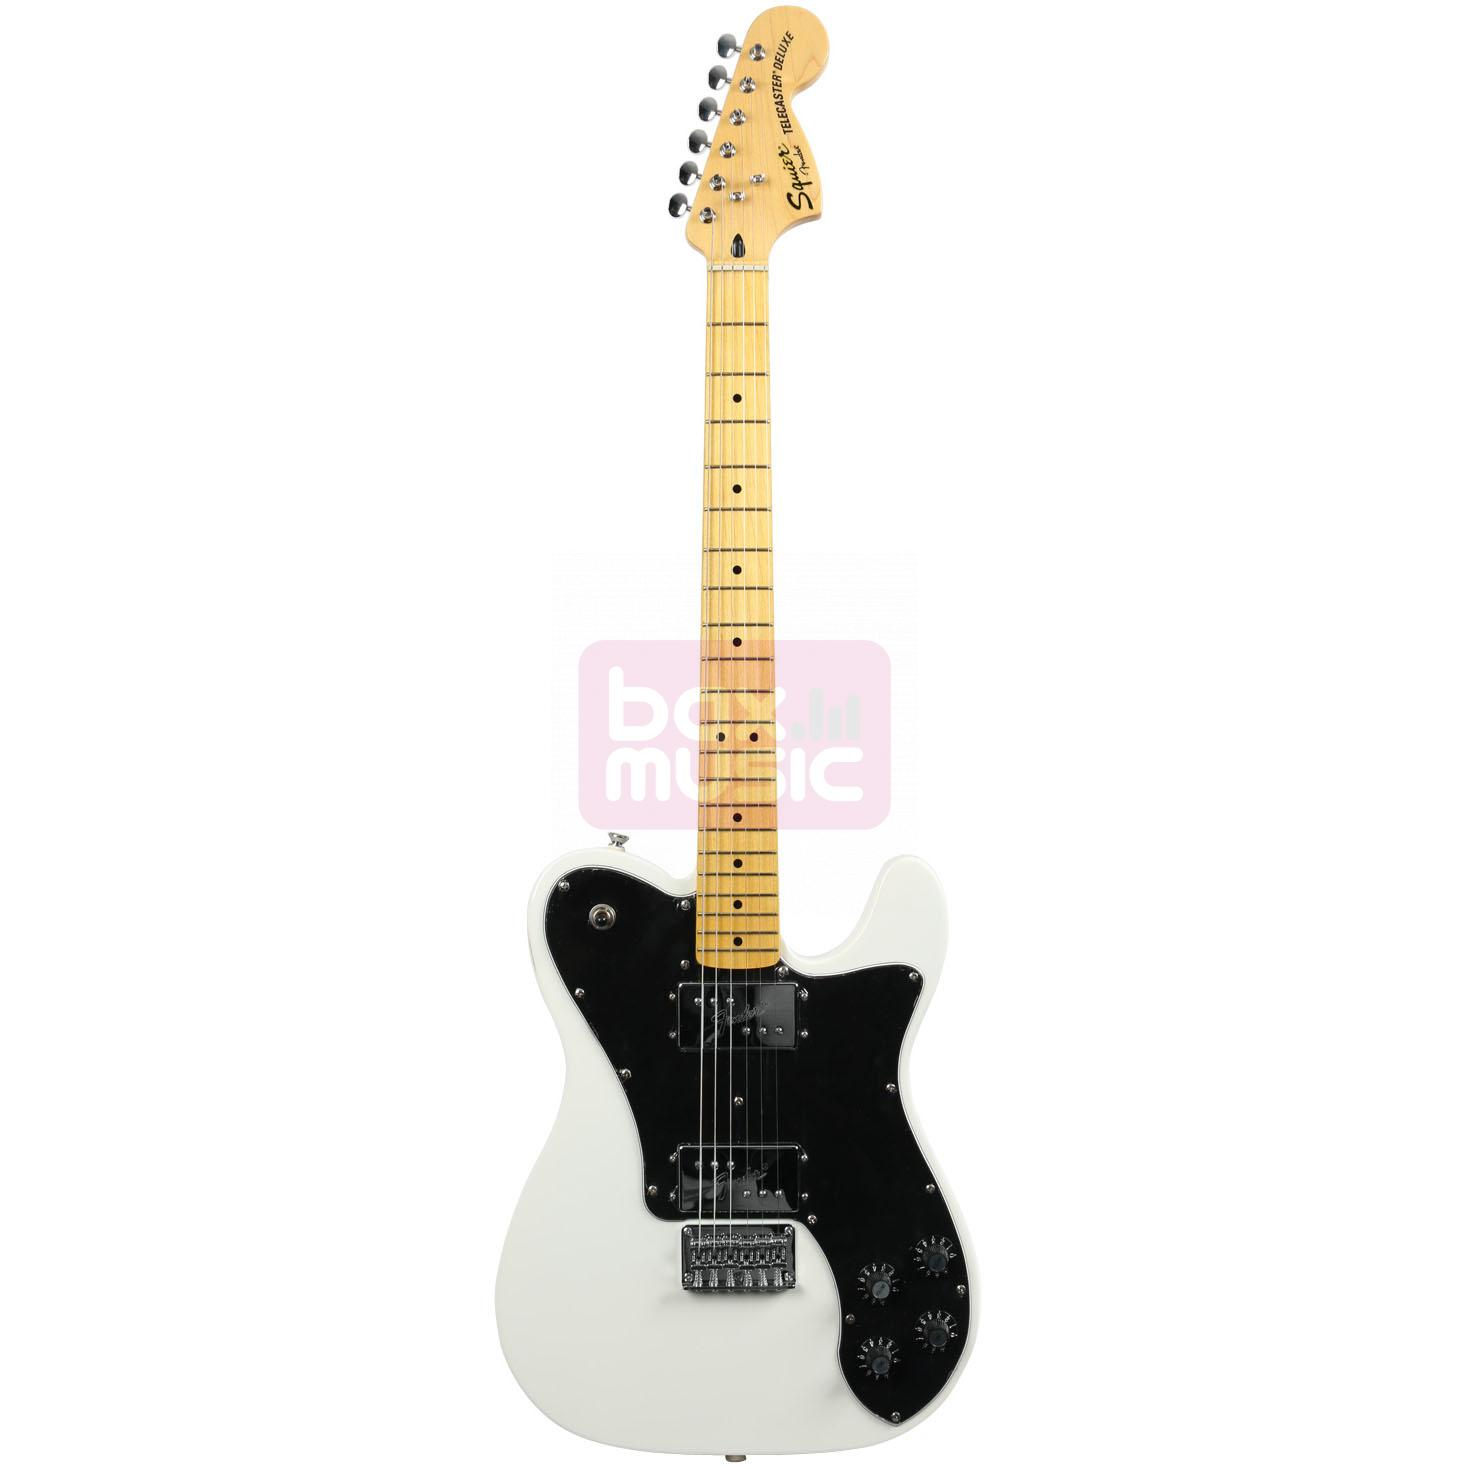 Squier Vintage Modified Telecaster Deluxe Olympic White MN